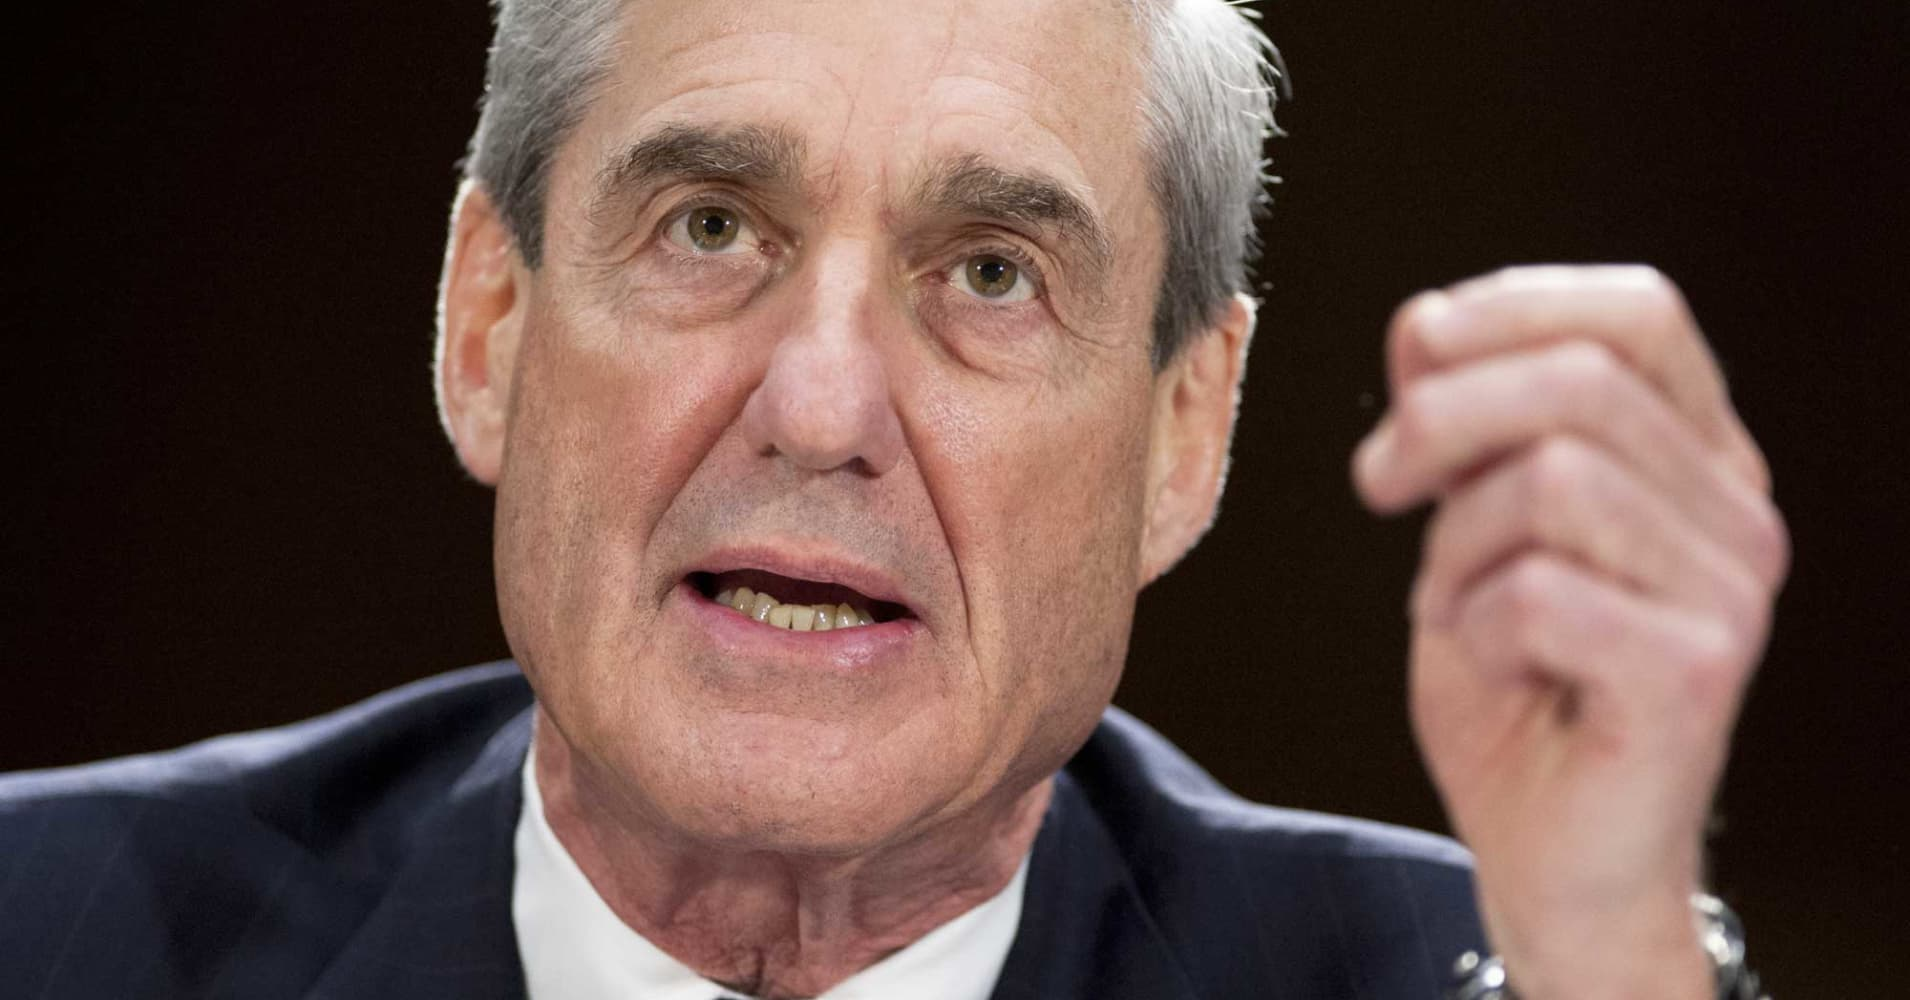 Trump claims inner workings of Robert Mueller's investigation are mess